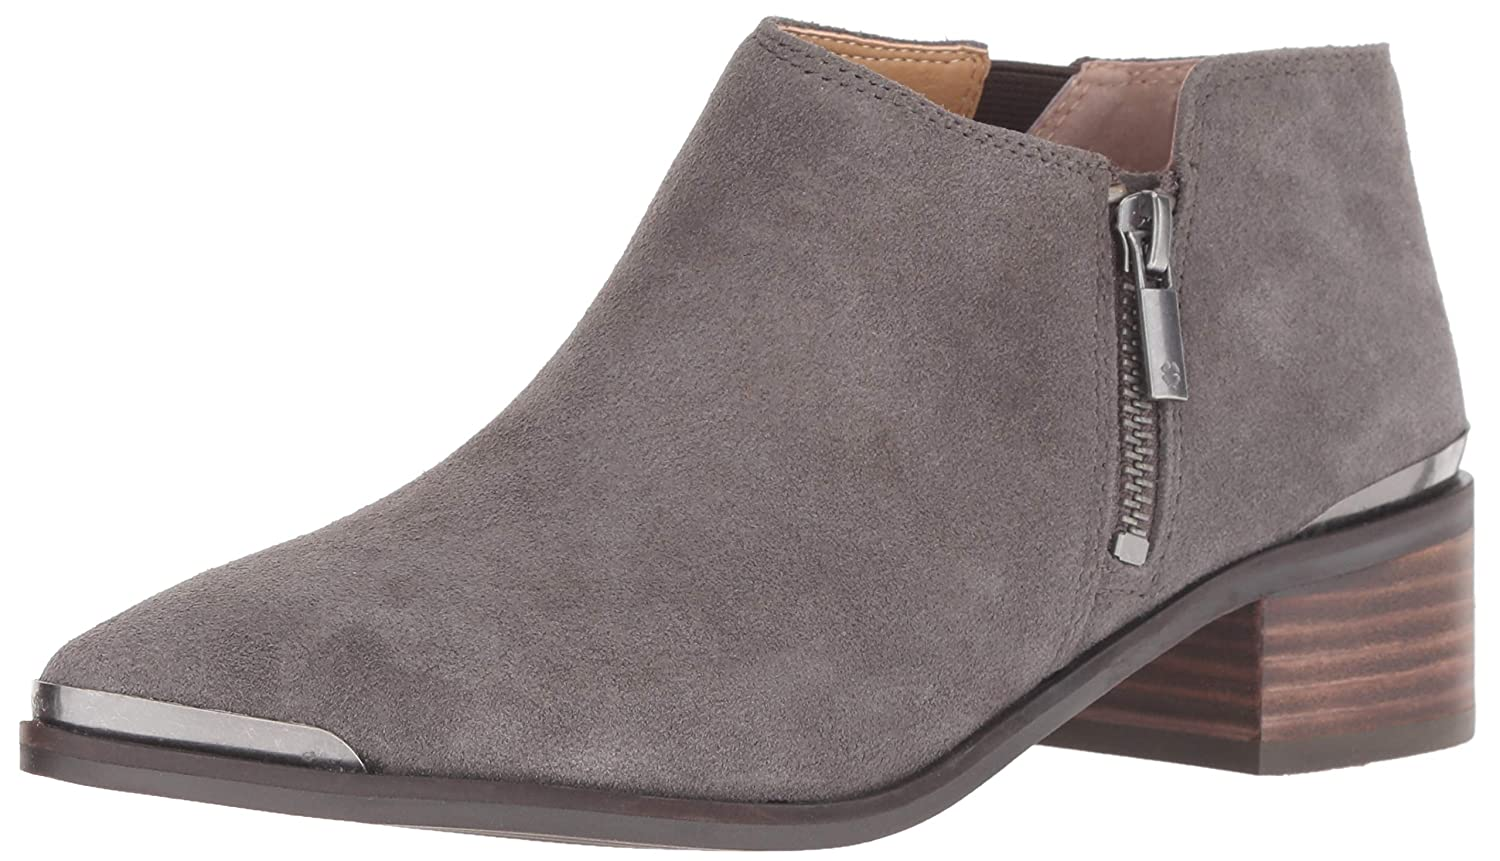 Periscope Lucky Brand Women's KOBEN Boot